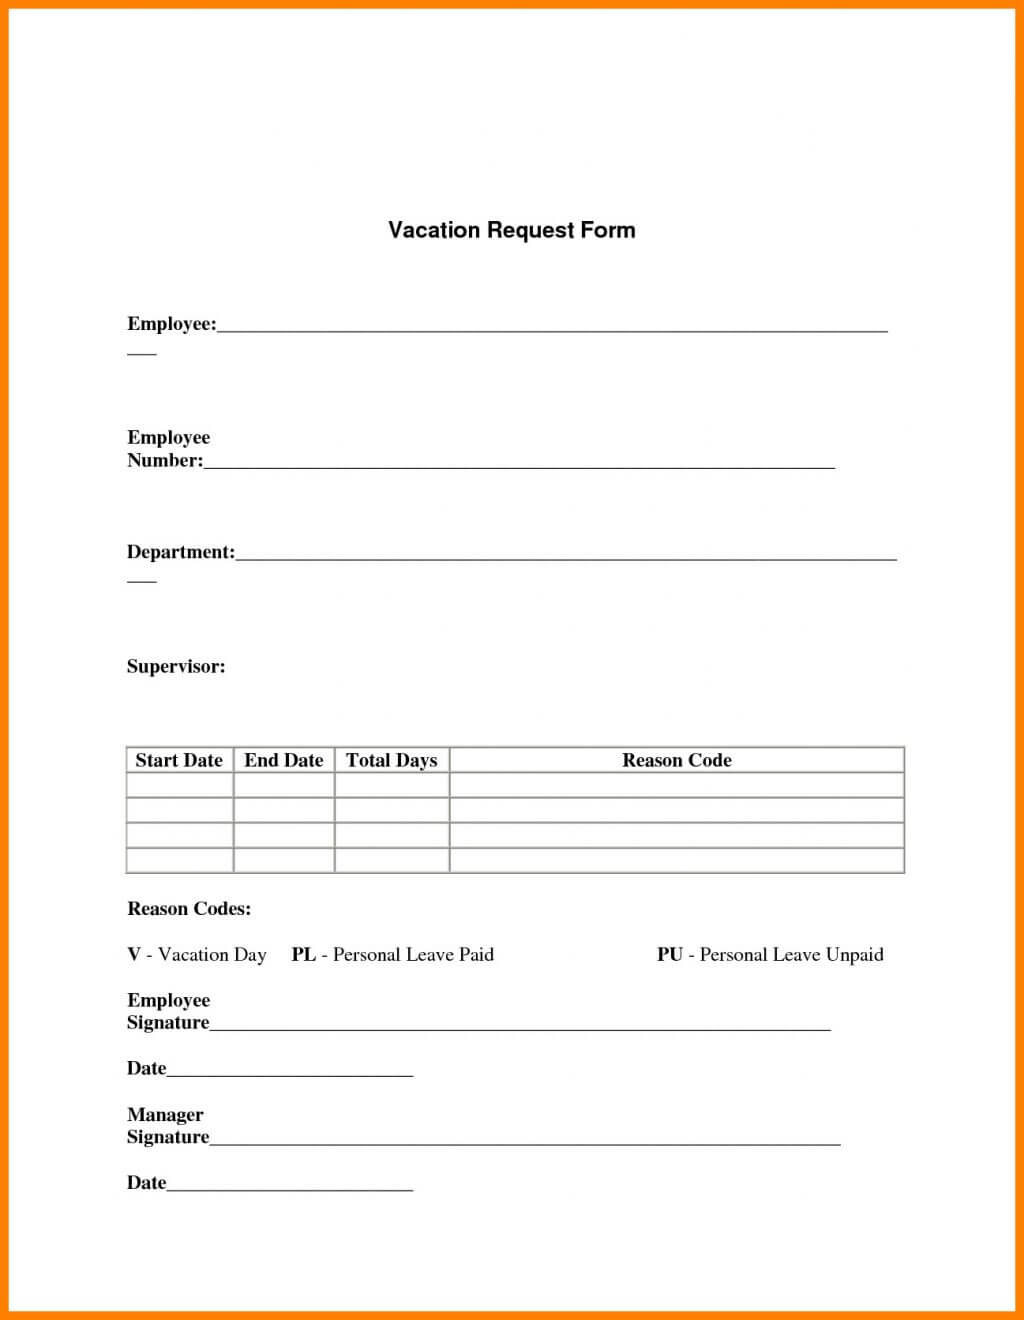 Request Form Template Bootstrap Sharepoint Quote Html Intended For Travel Request Form Template Word